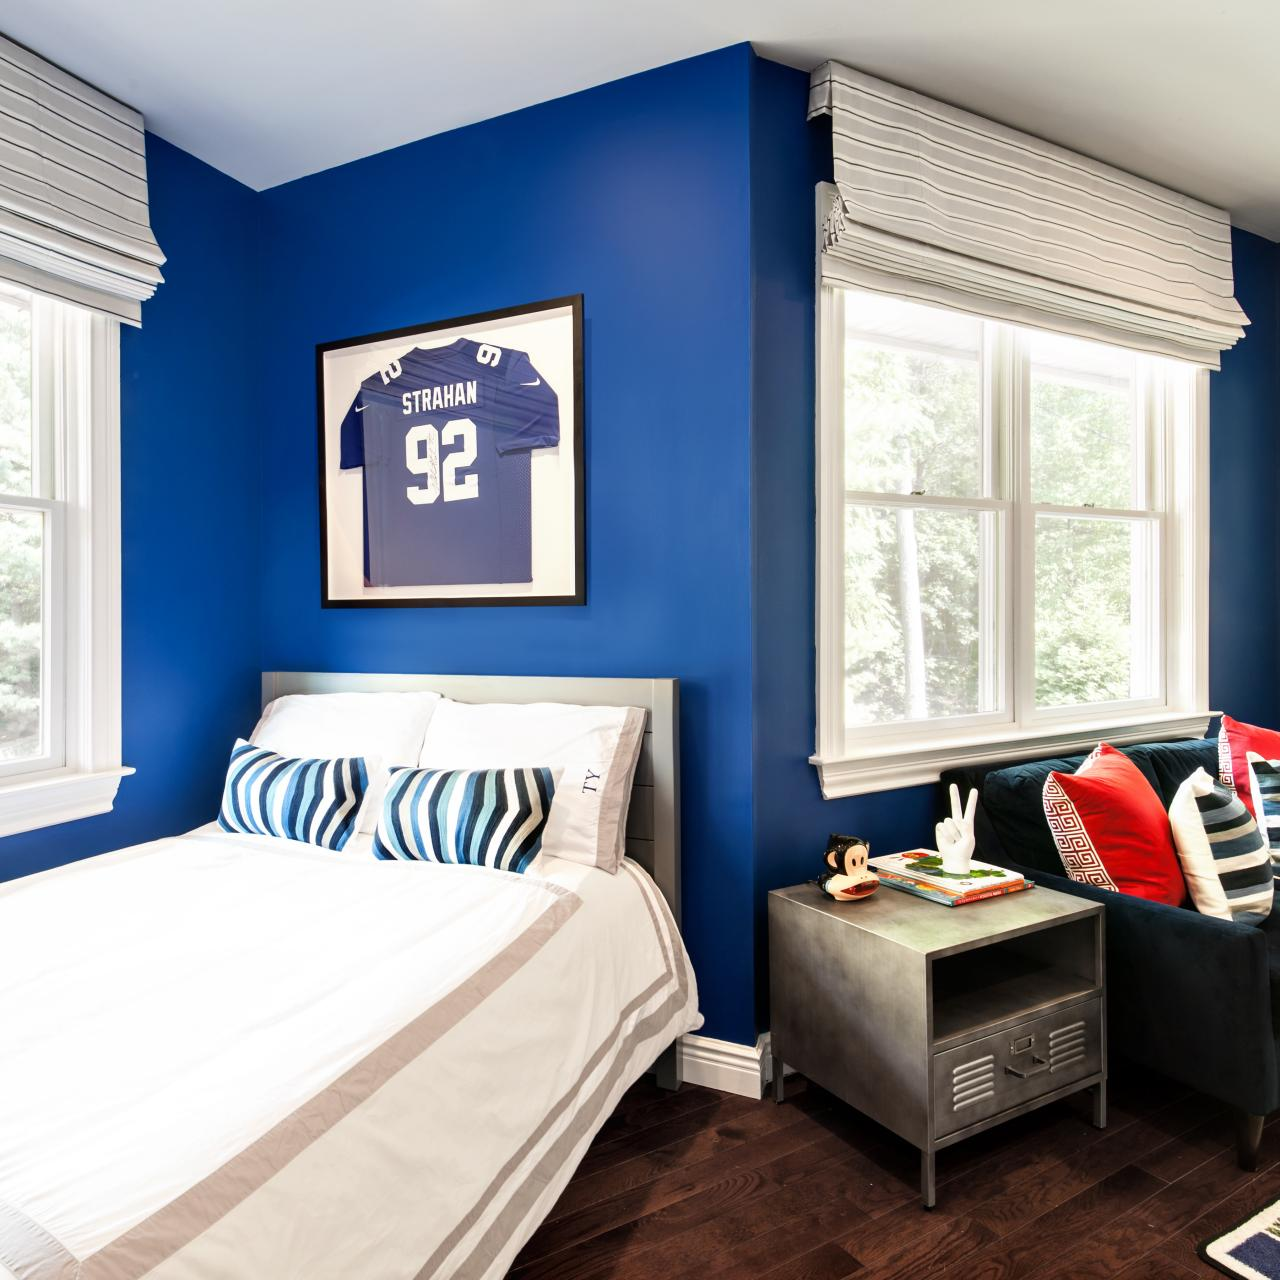 Blue Bedroom Boys Bedroom Modern Design Apartment With Loft Bedroom Blinds For Bedroom: Photos